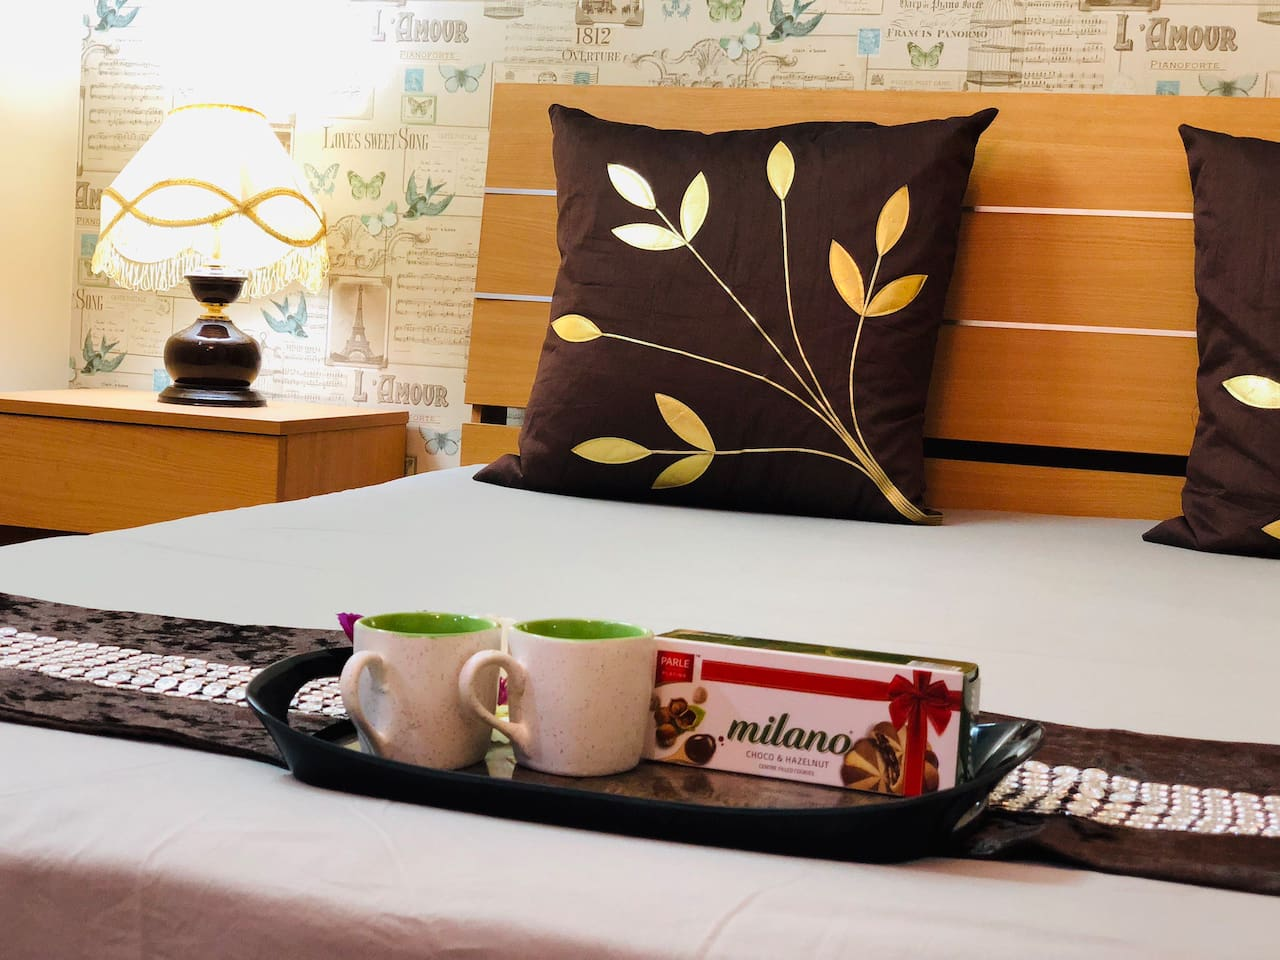 Comfortable king-size huge bed for you and your loved ones.